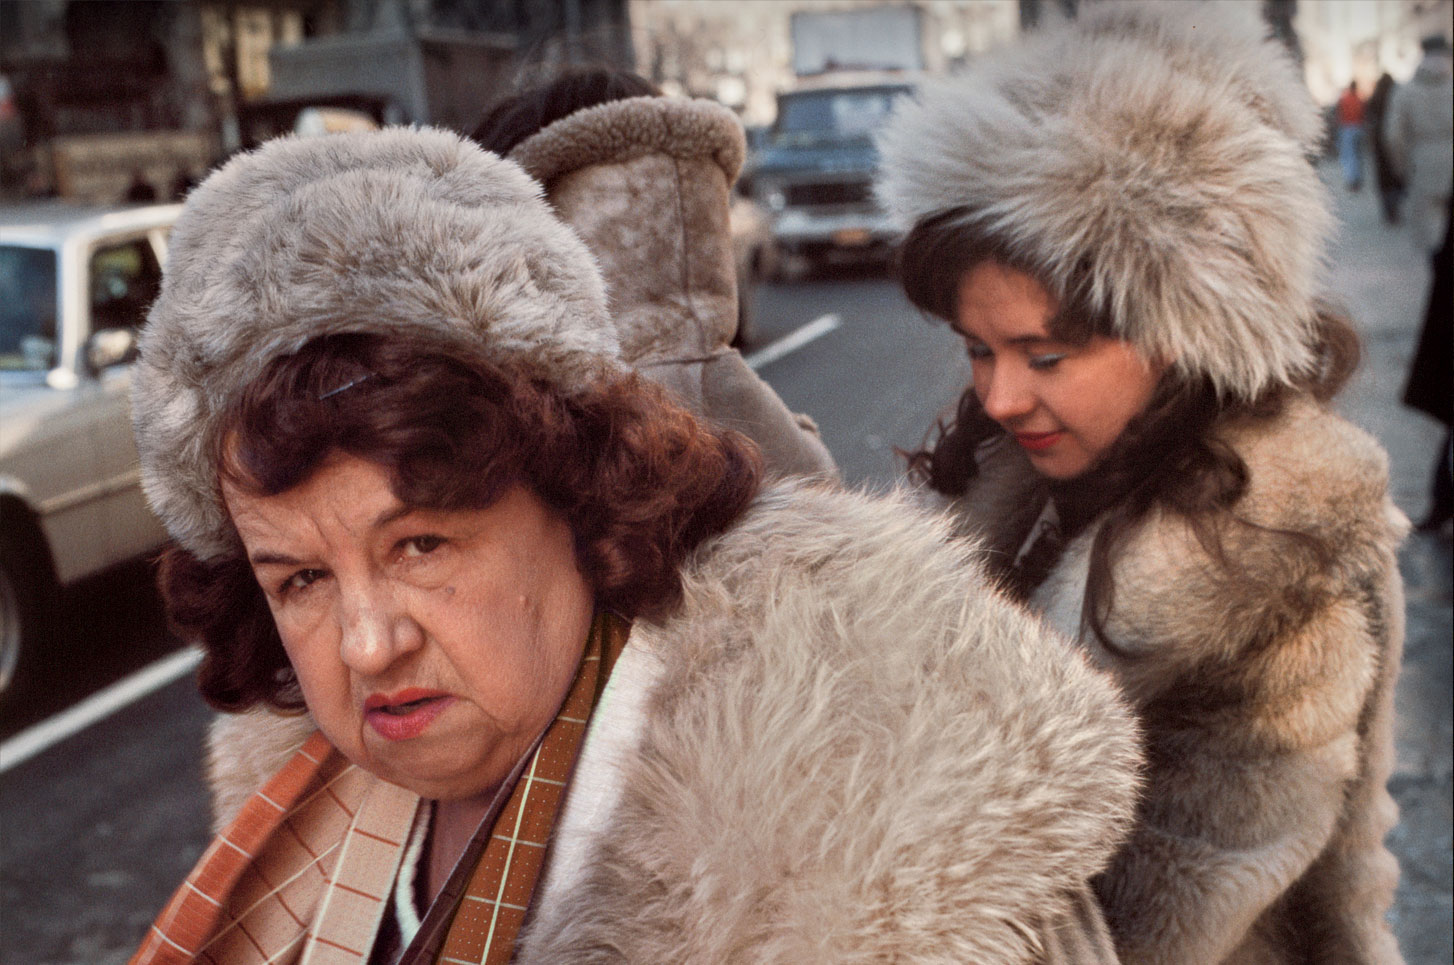 Fur, New York, NY 1981